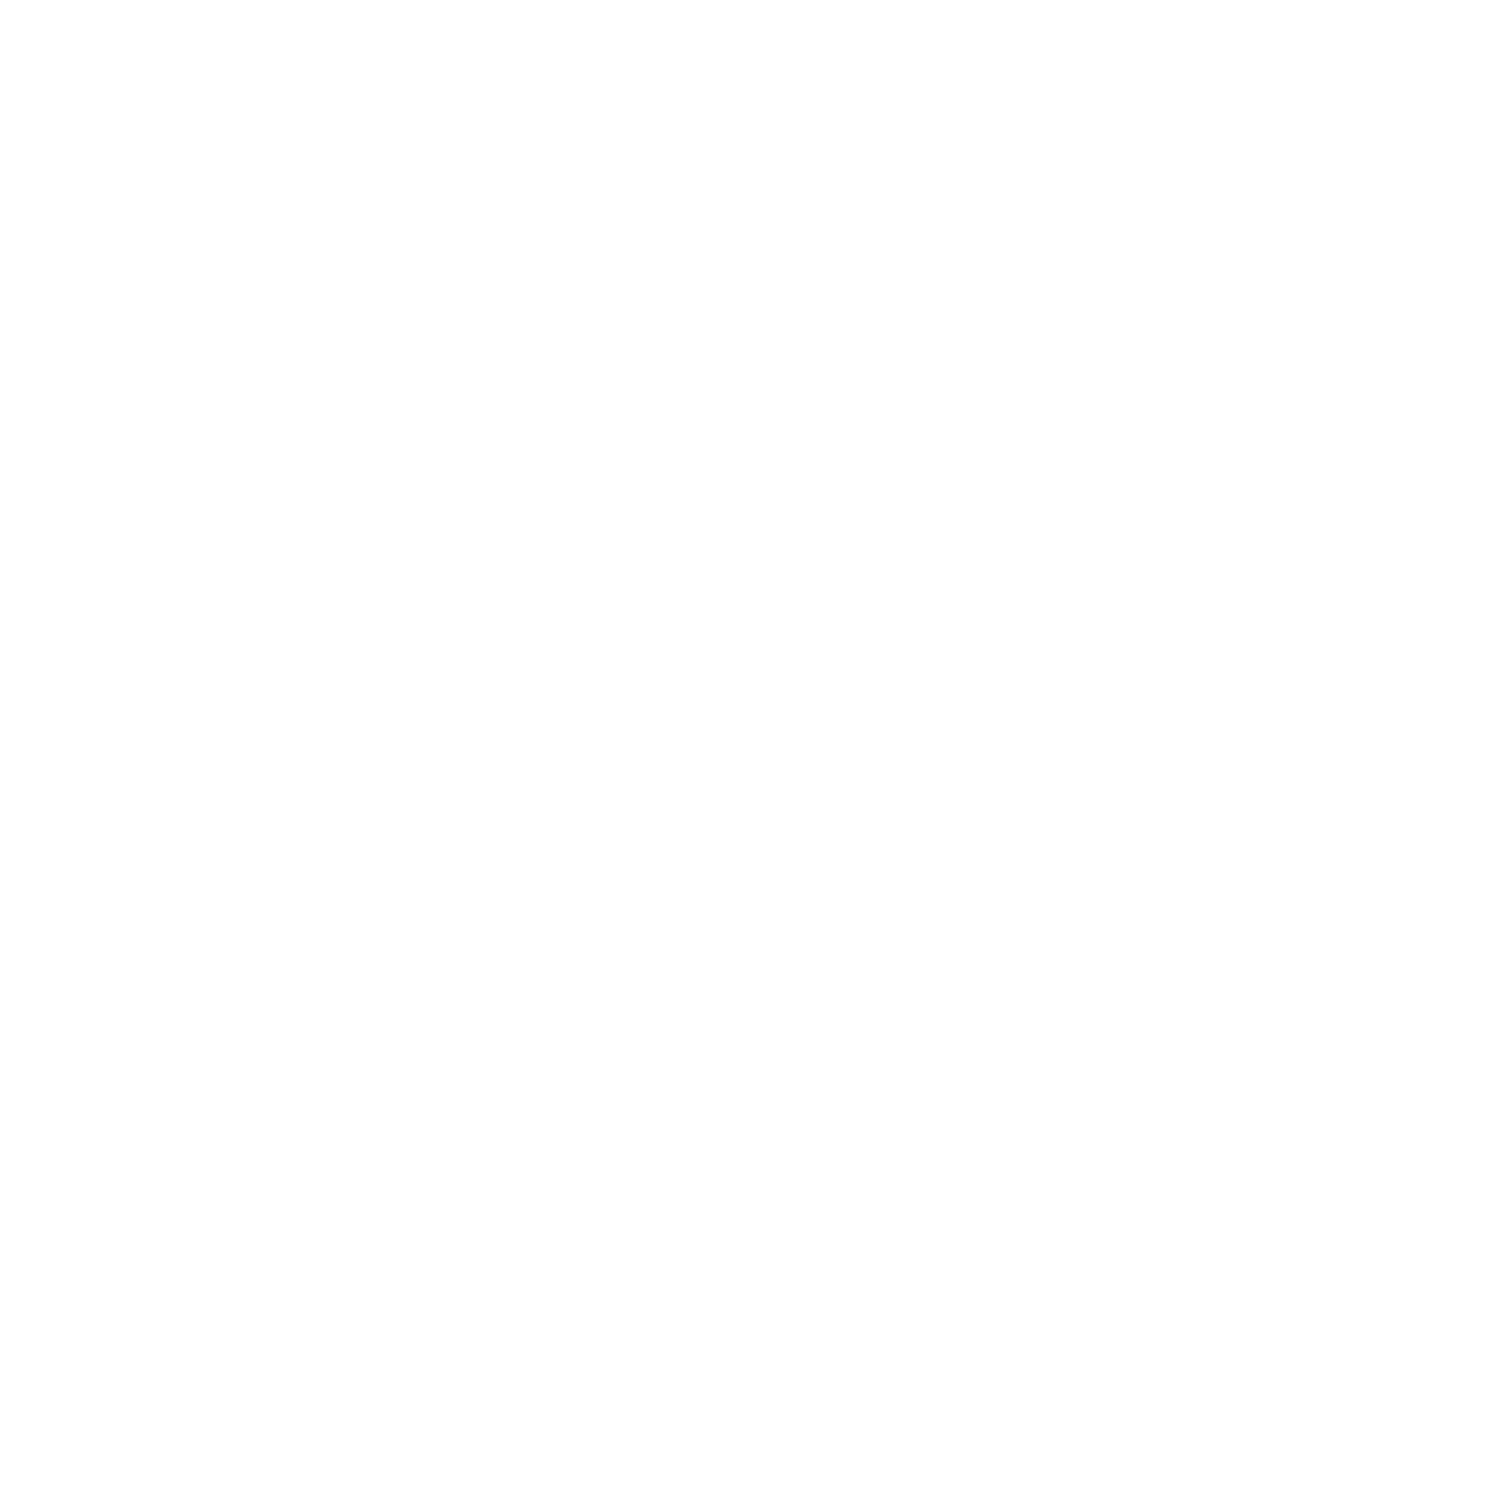 The Venue OKC